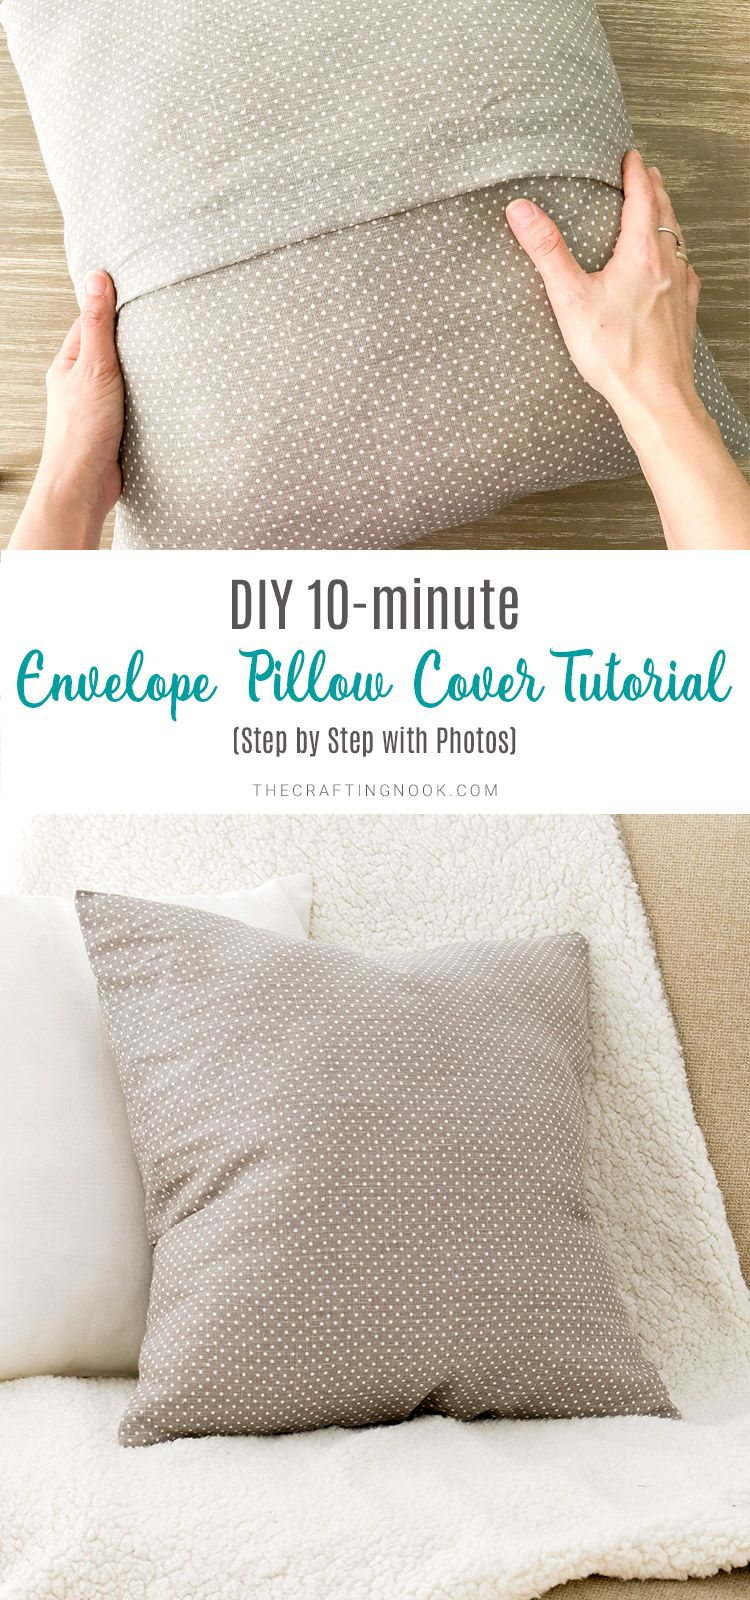 Diy 10 Minute Envelope Pillow Cover Tutorial Step By Step With